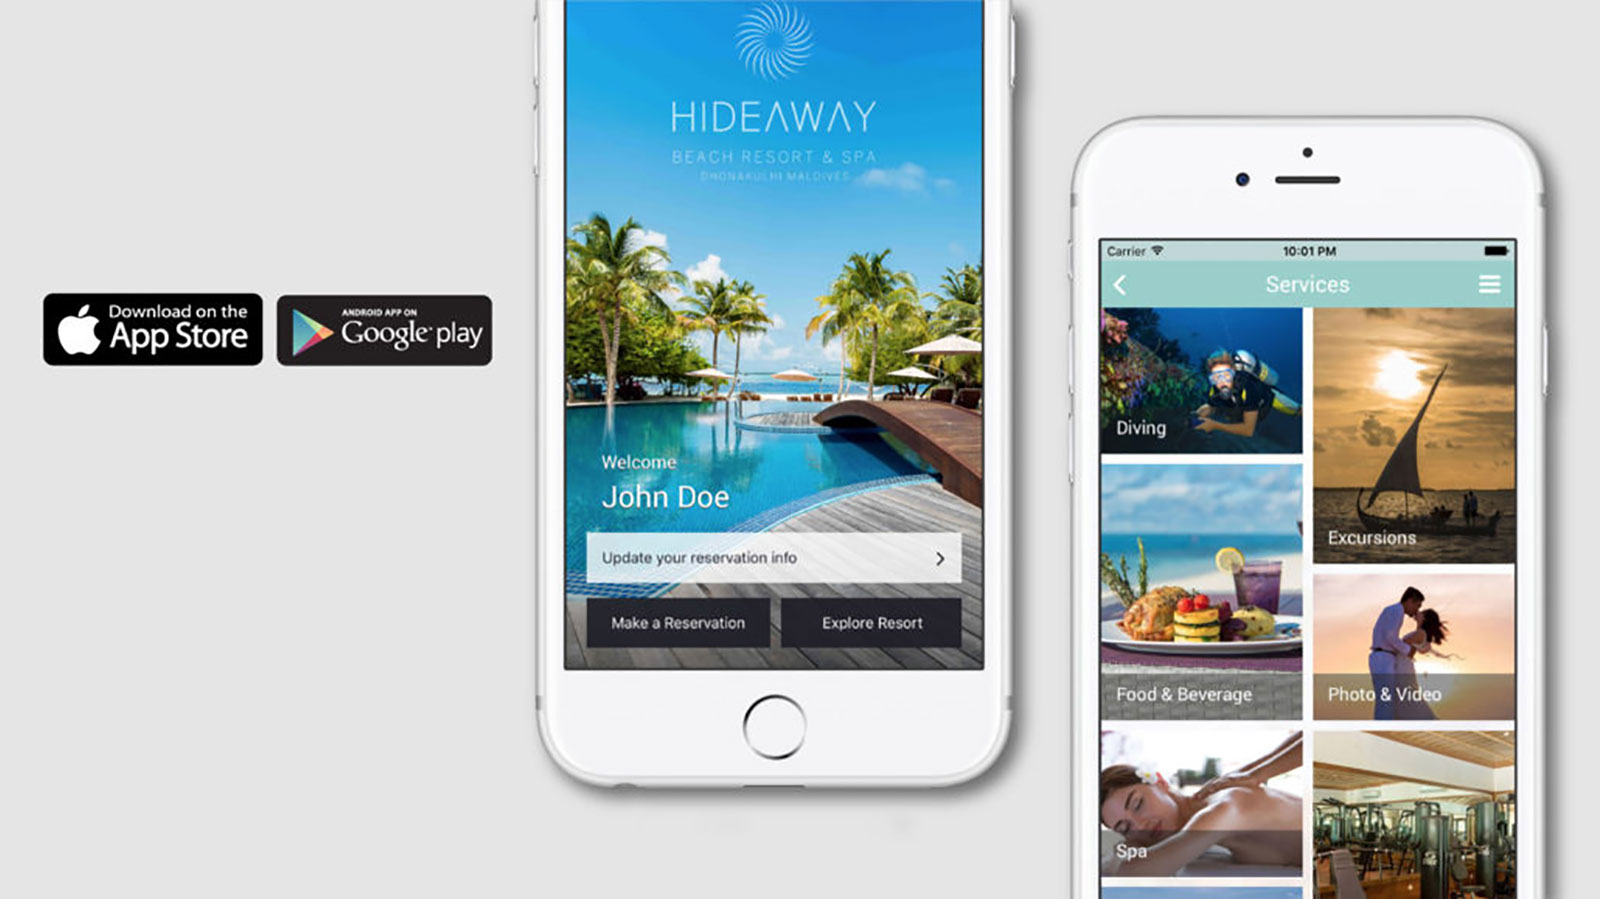 Maldives Resorts - Maldives Luxury Resort - Mobile App iOS Android - Hideaway Maldives Beach Resort & Spa